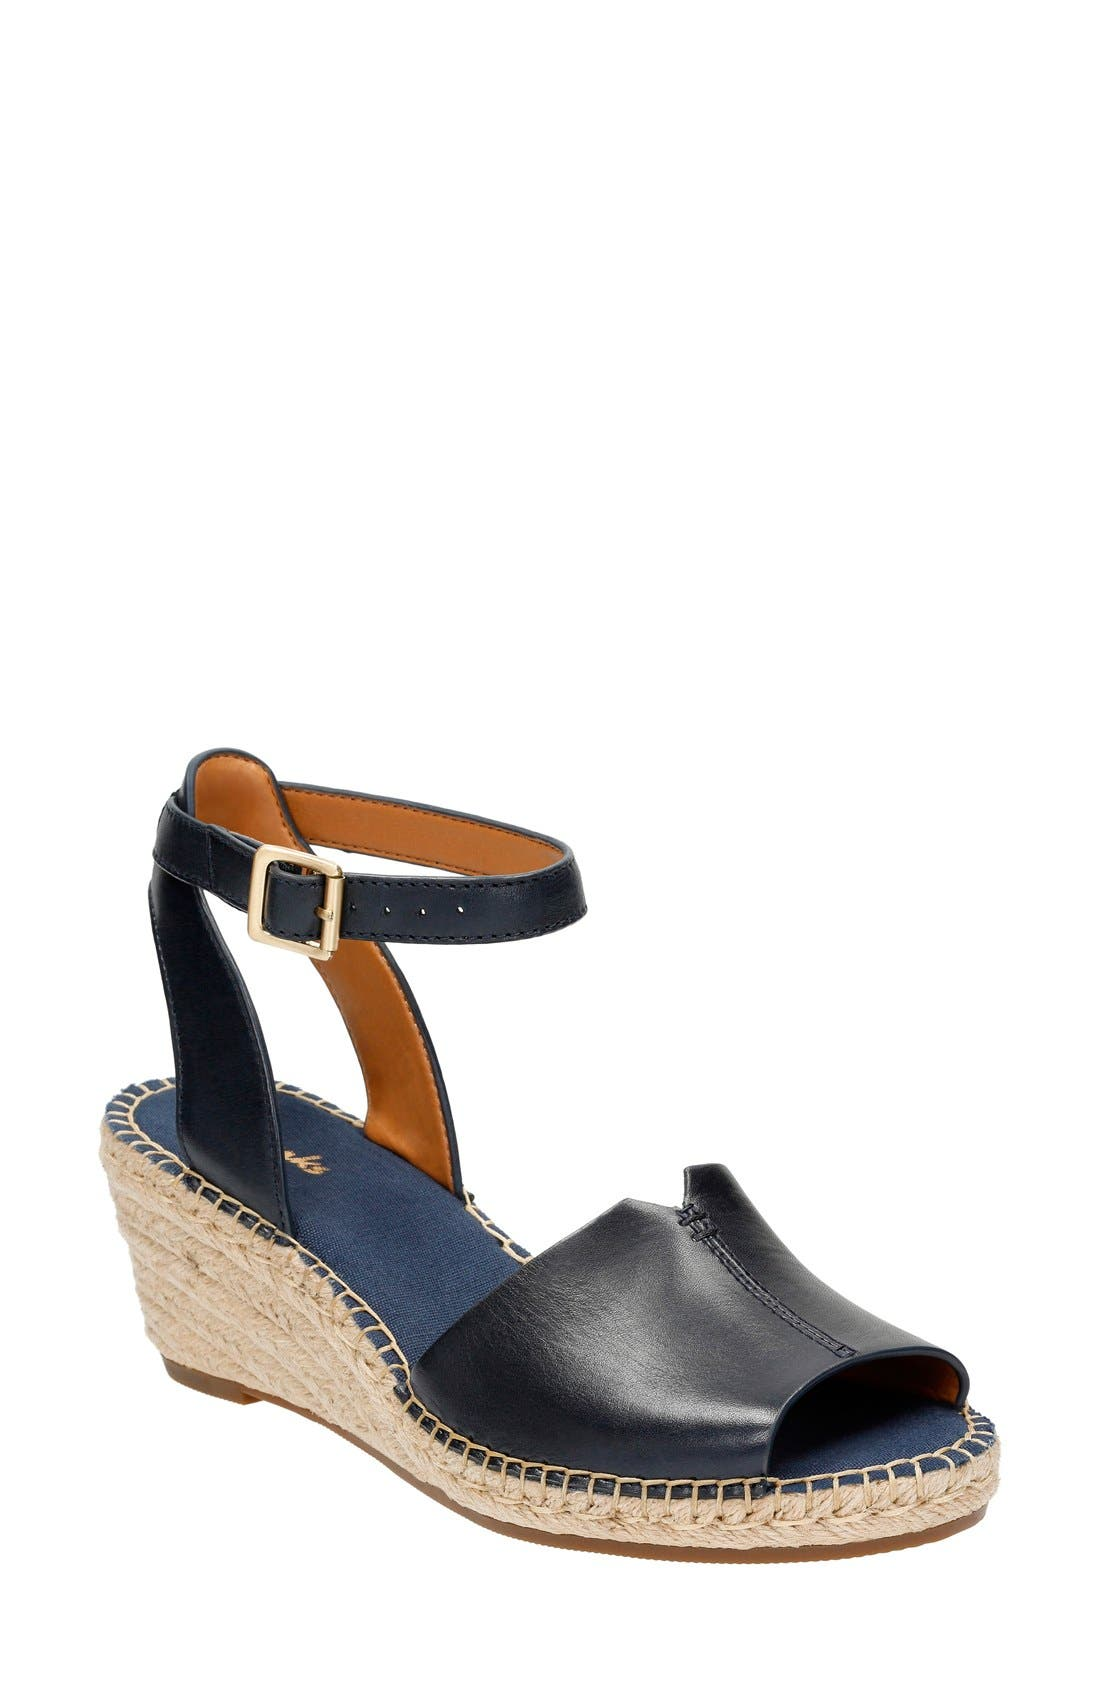 Alternate Image 1 Selected - Clarks® 'Petrina Selma' Sandal (Women)